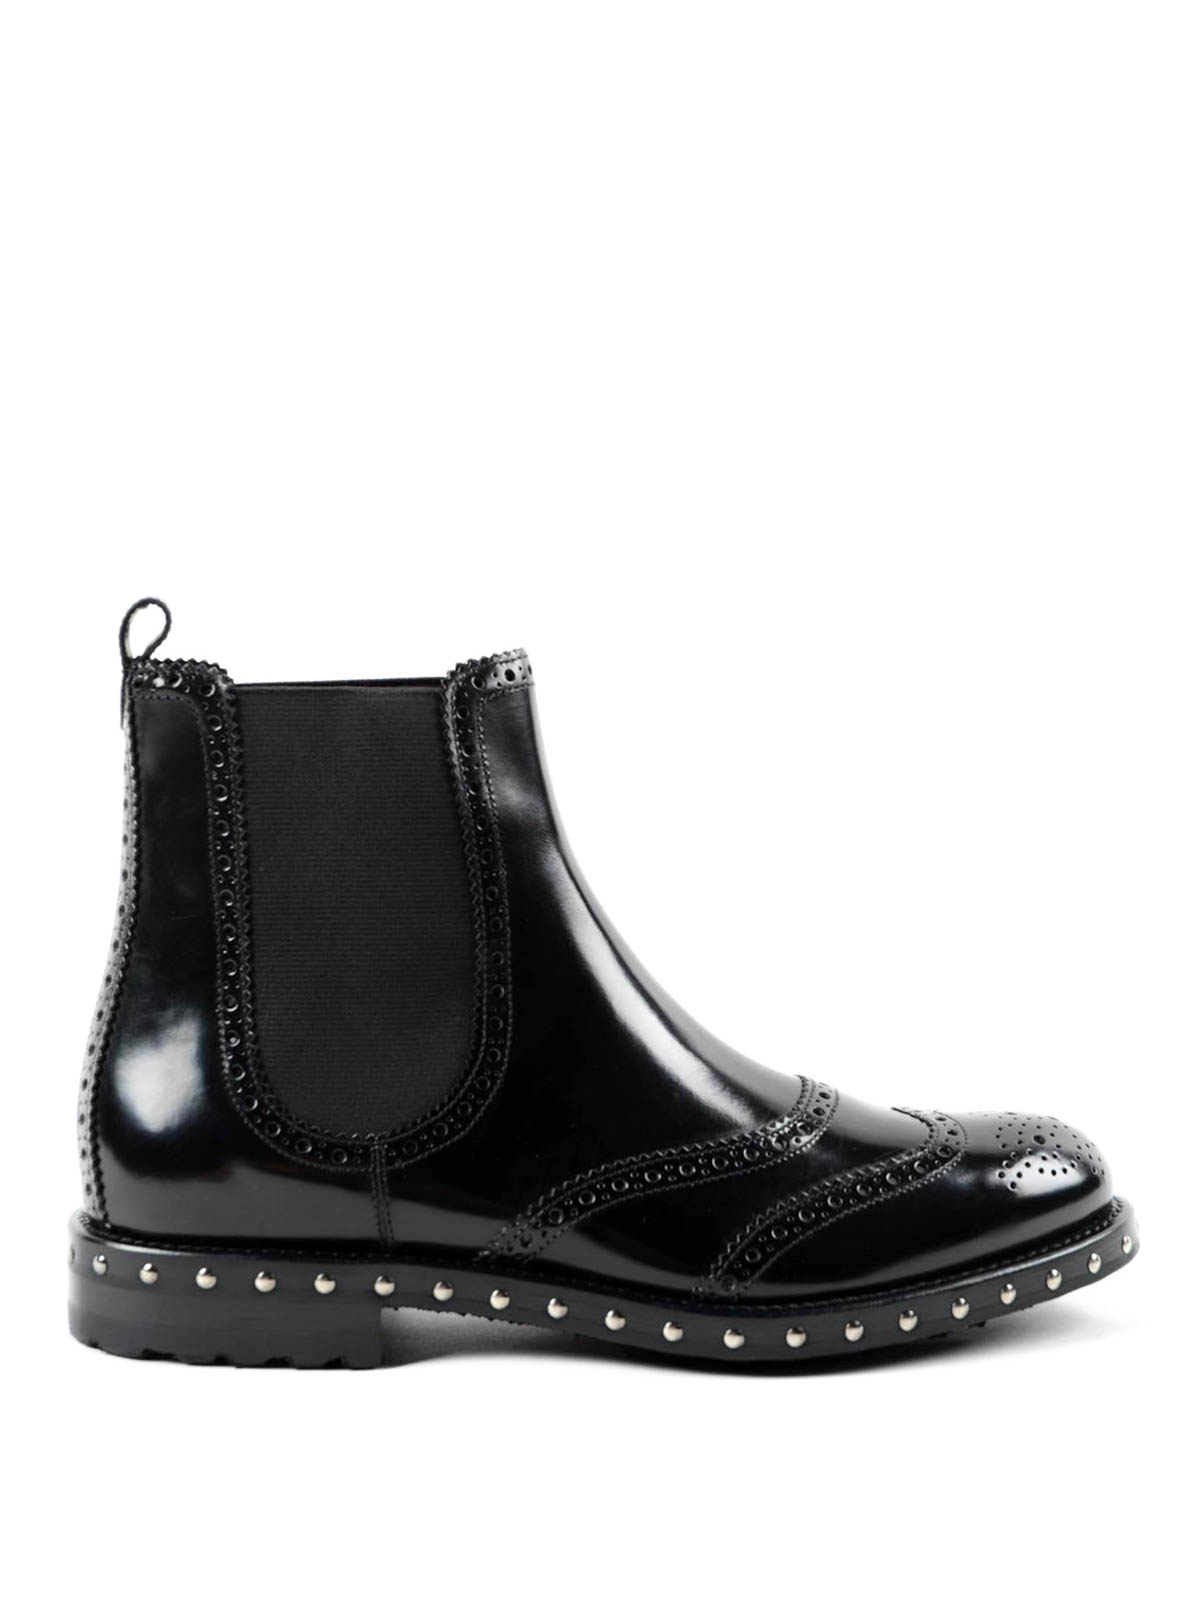 Dolce & Gabbana Brogue Chelsea boots wd59S